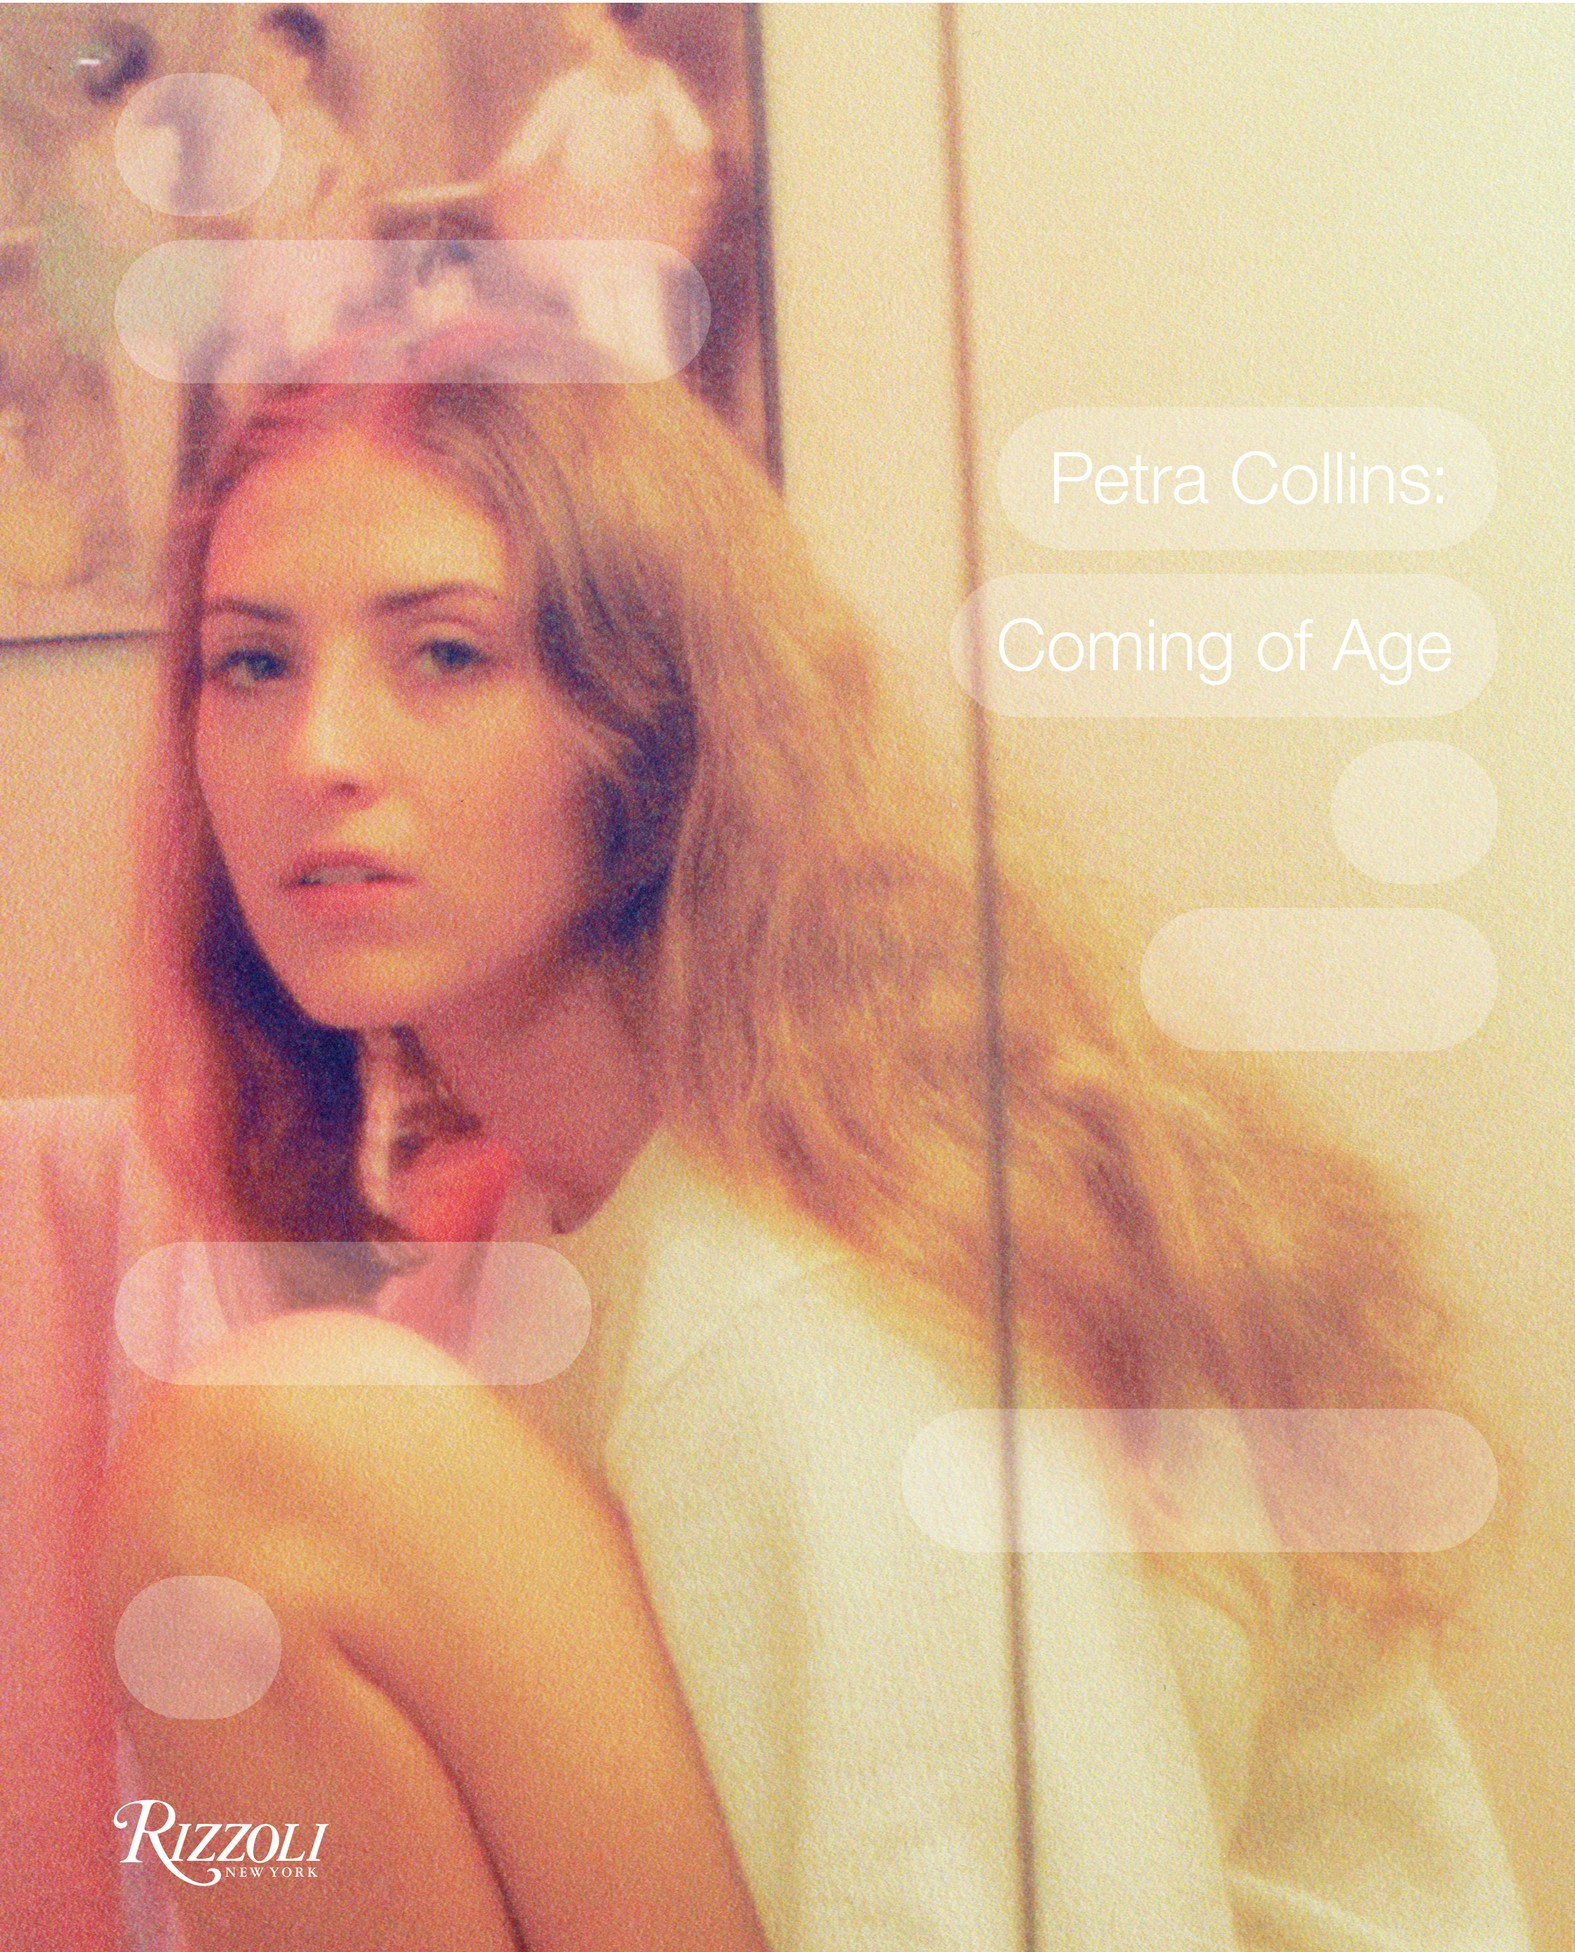 Behind The Artwork - Un approfondimento su Petra Collins | Collater.al